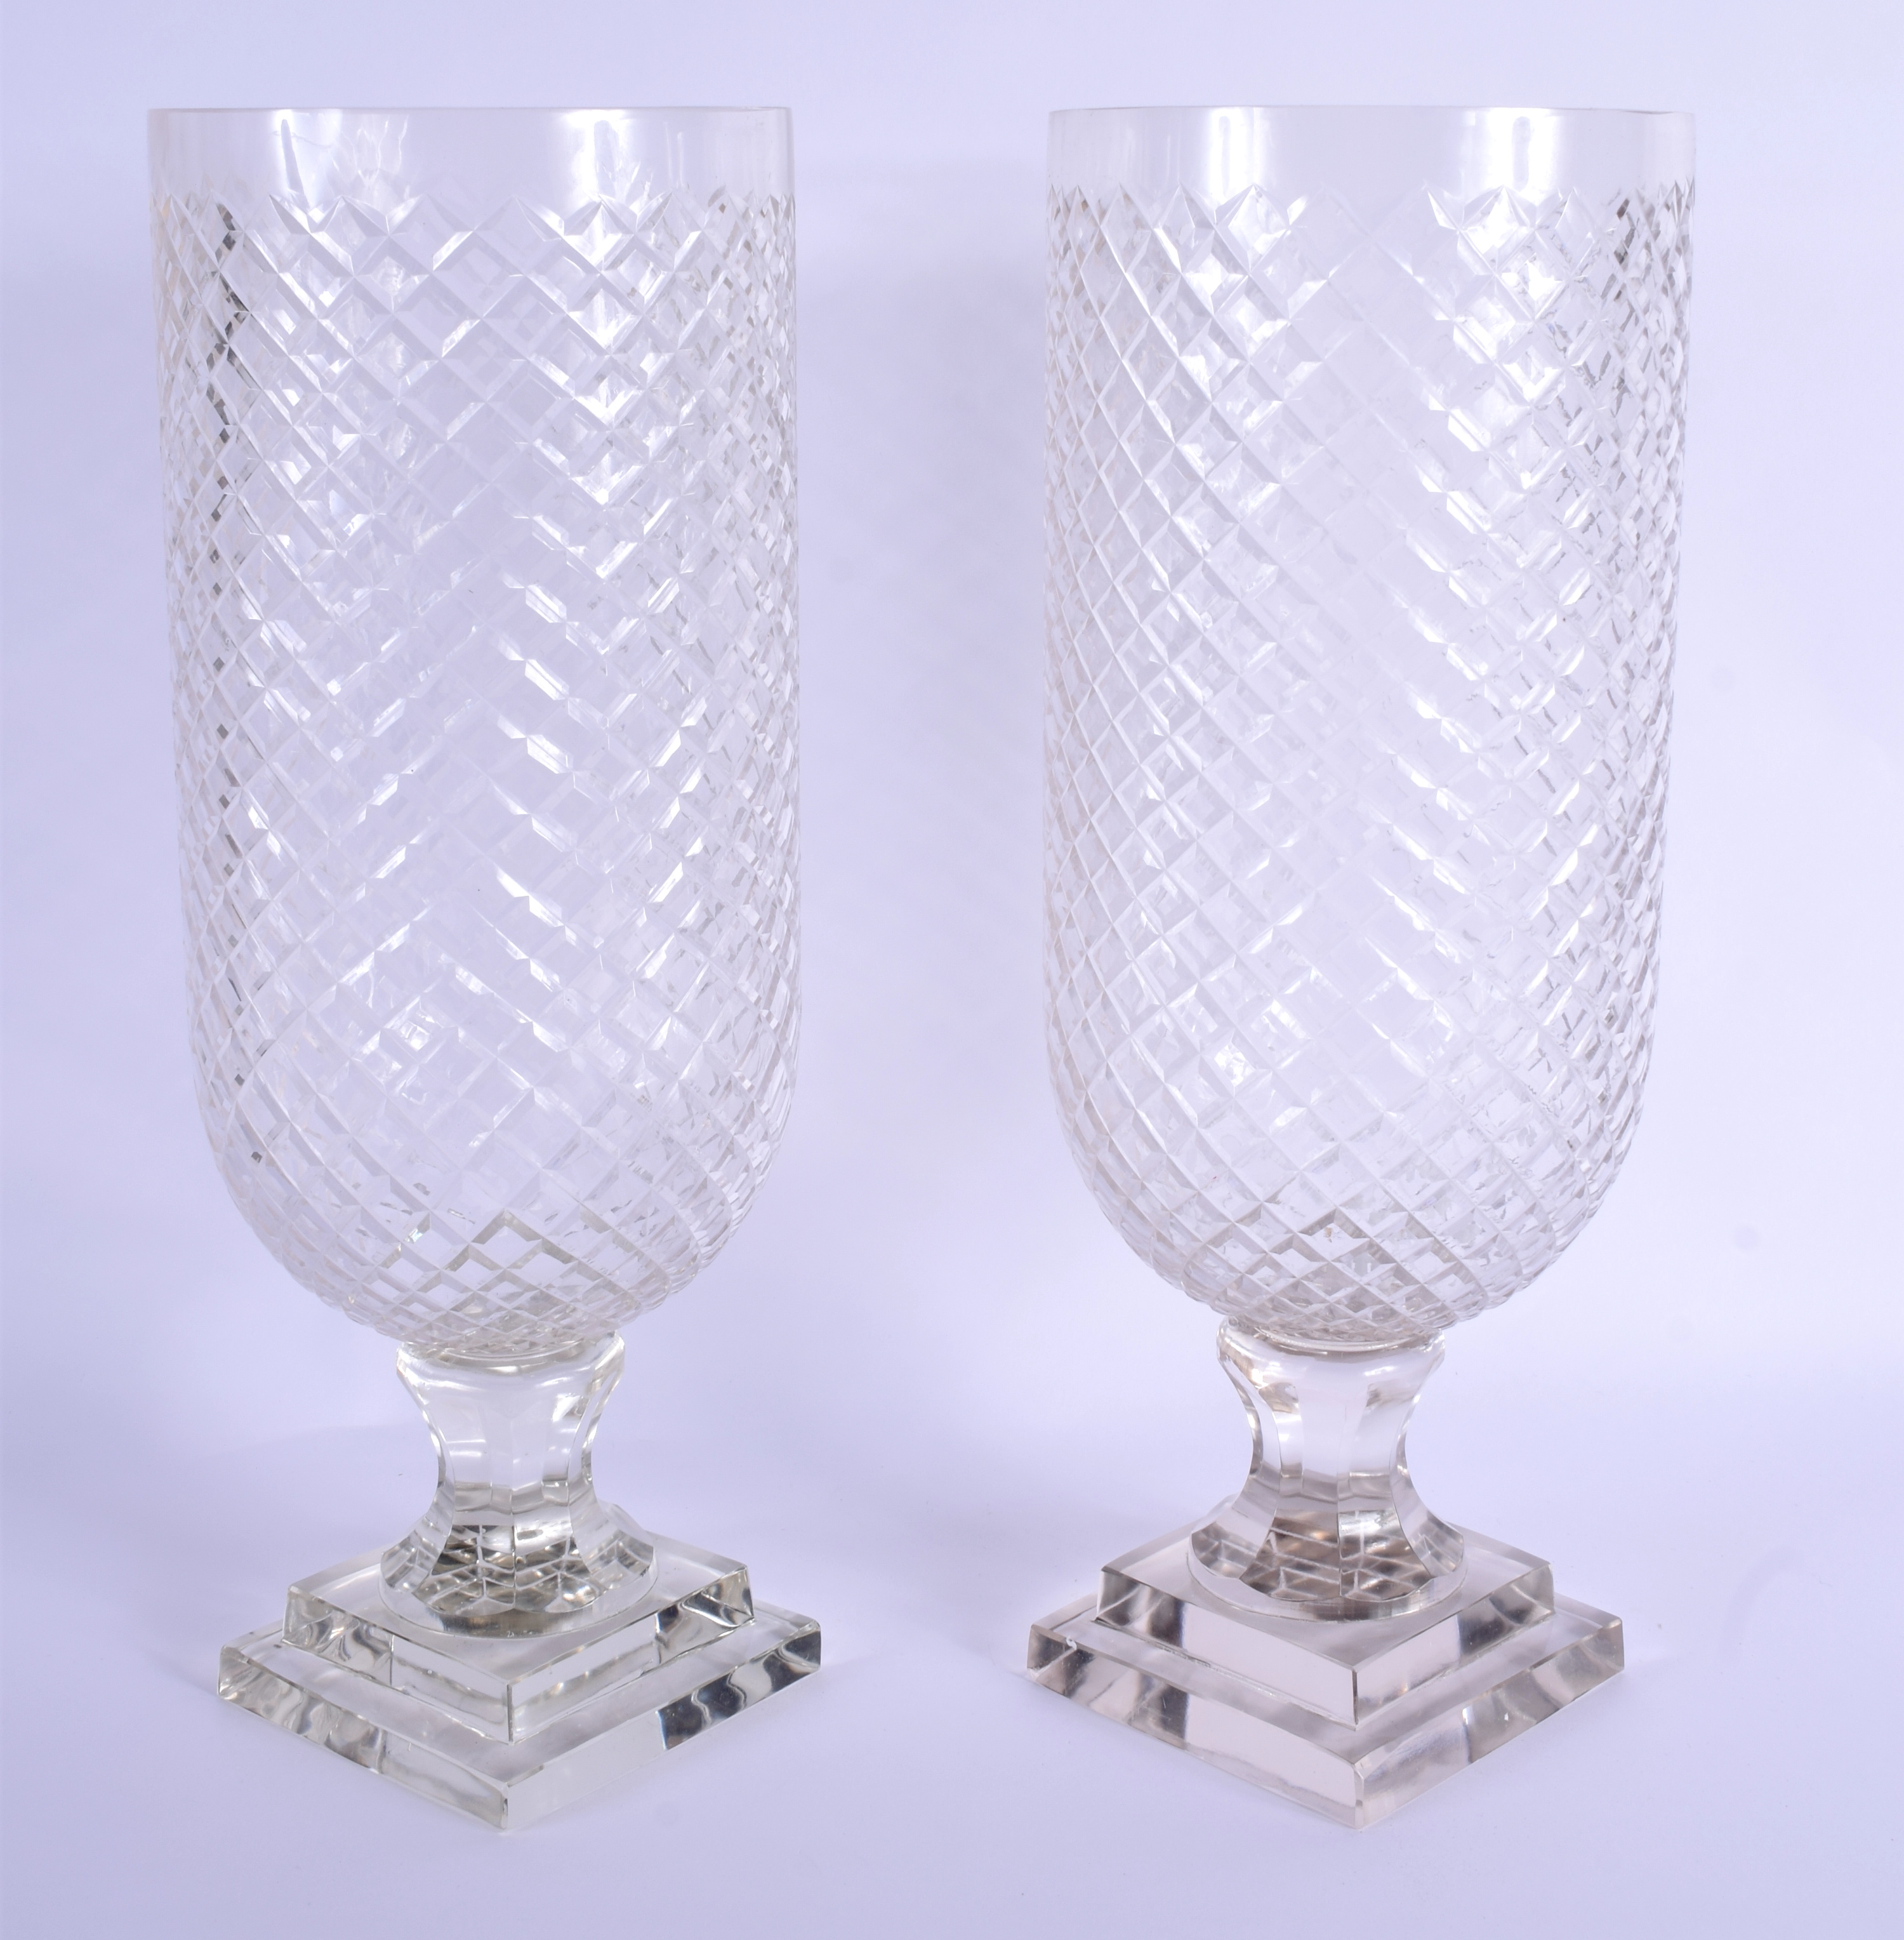 A PAIR OF CUT GLASS STORM CELERY LAMPS. 39 cm high. - Image 2 of 2